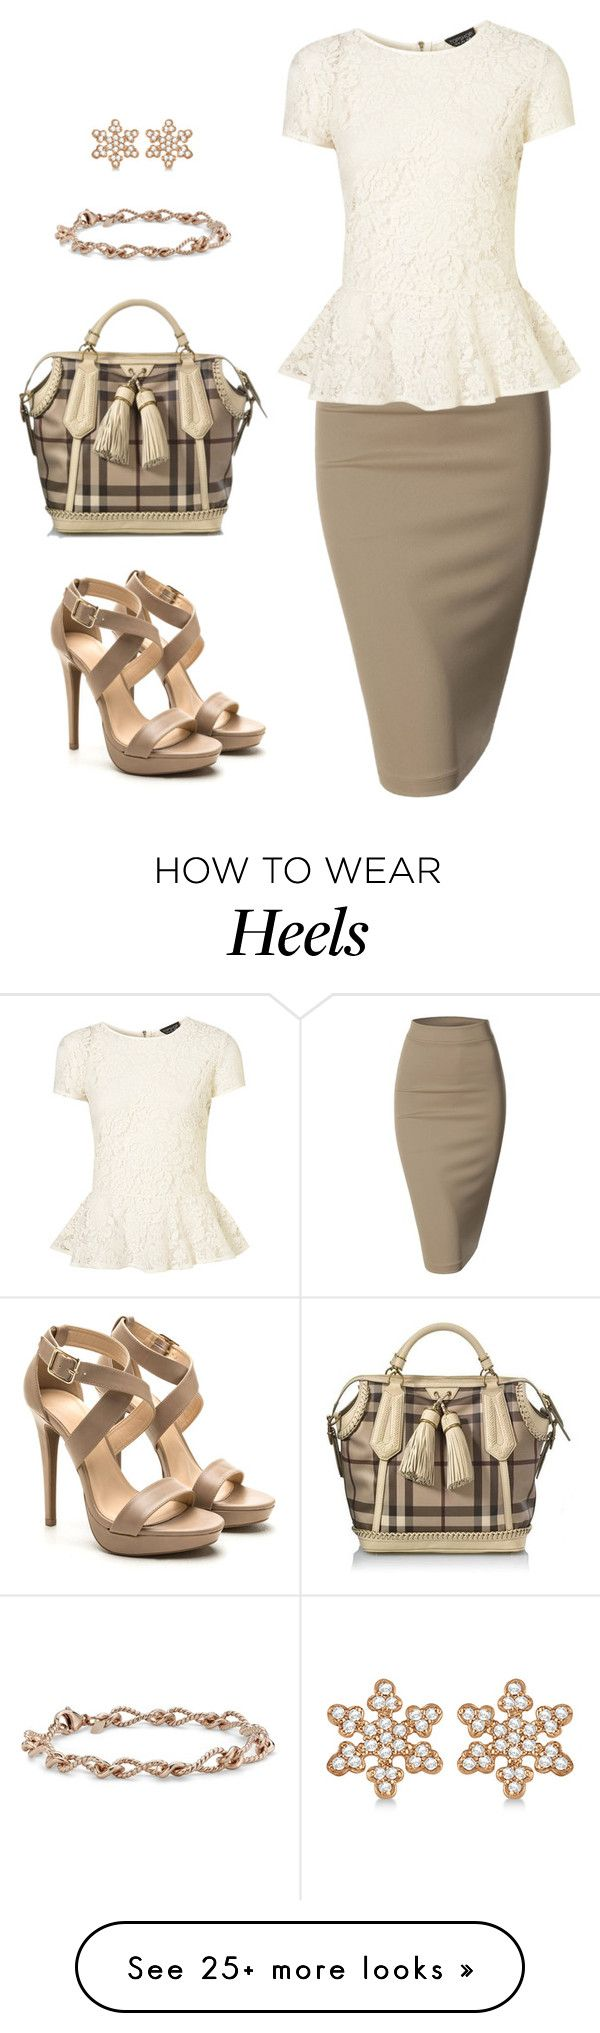 """Untitled #832"" by gallant81 on Polyvore featuring Doublju, Burberry, Blue Nile and Allurez"